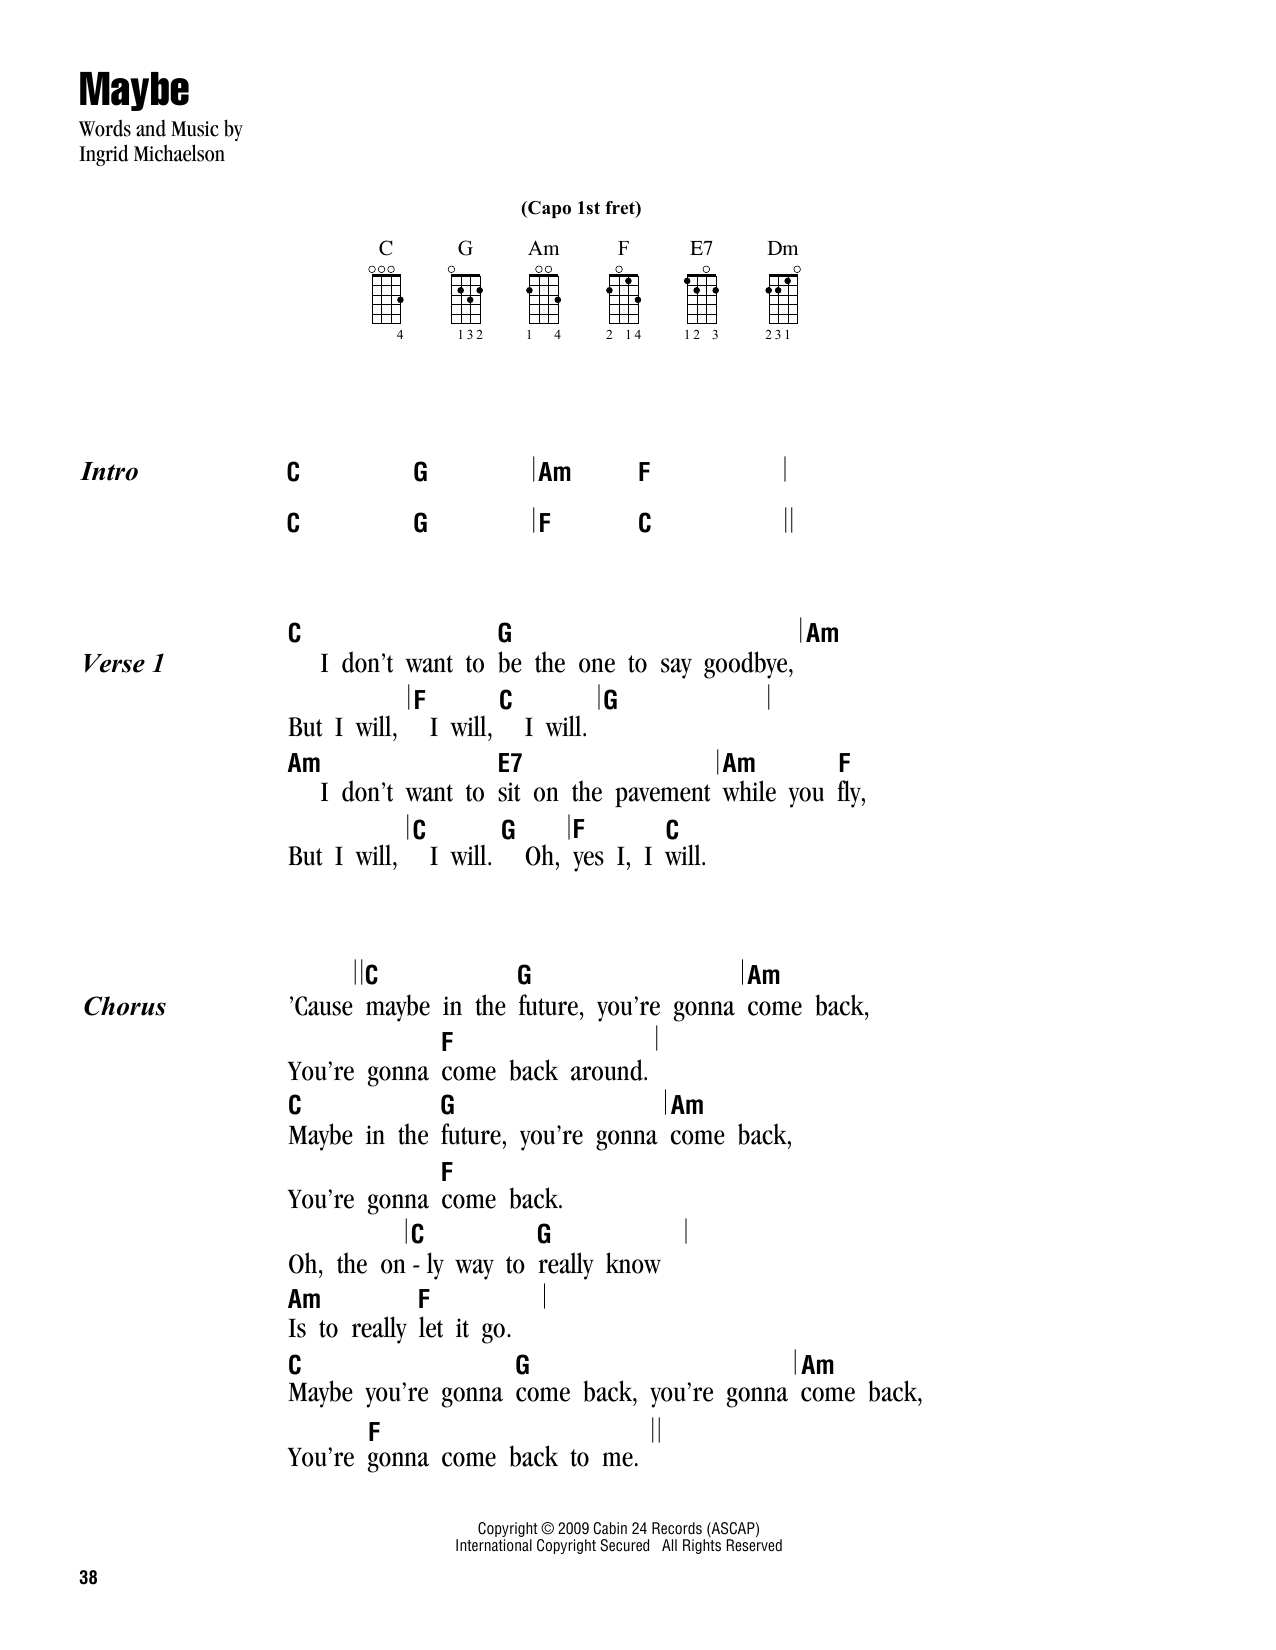 Tablature guitare Maybe de Ingrid Michaelson - Ukulele (strumming patterns)